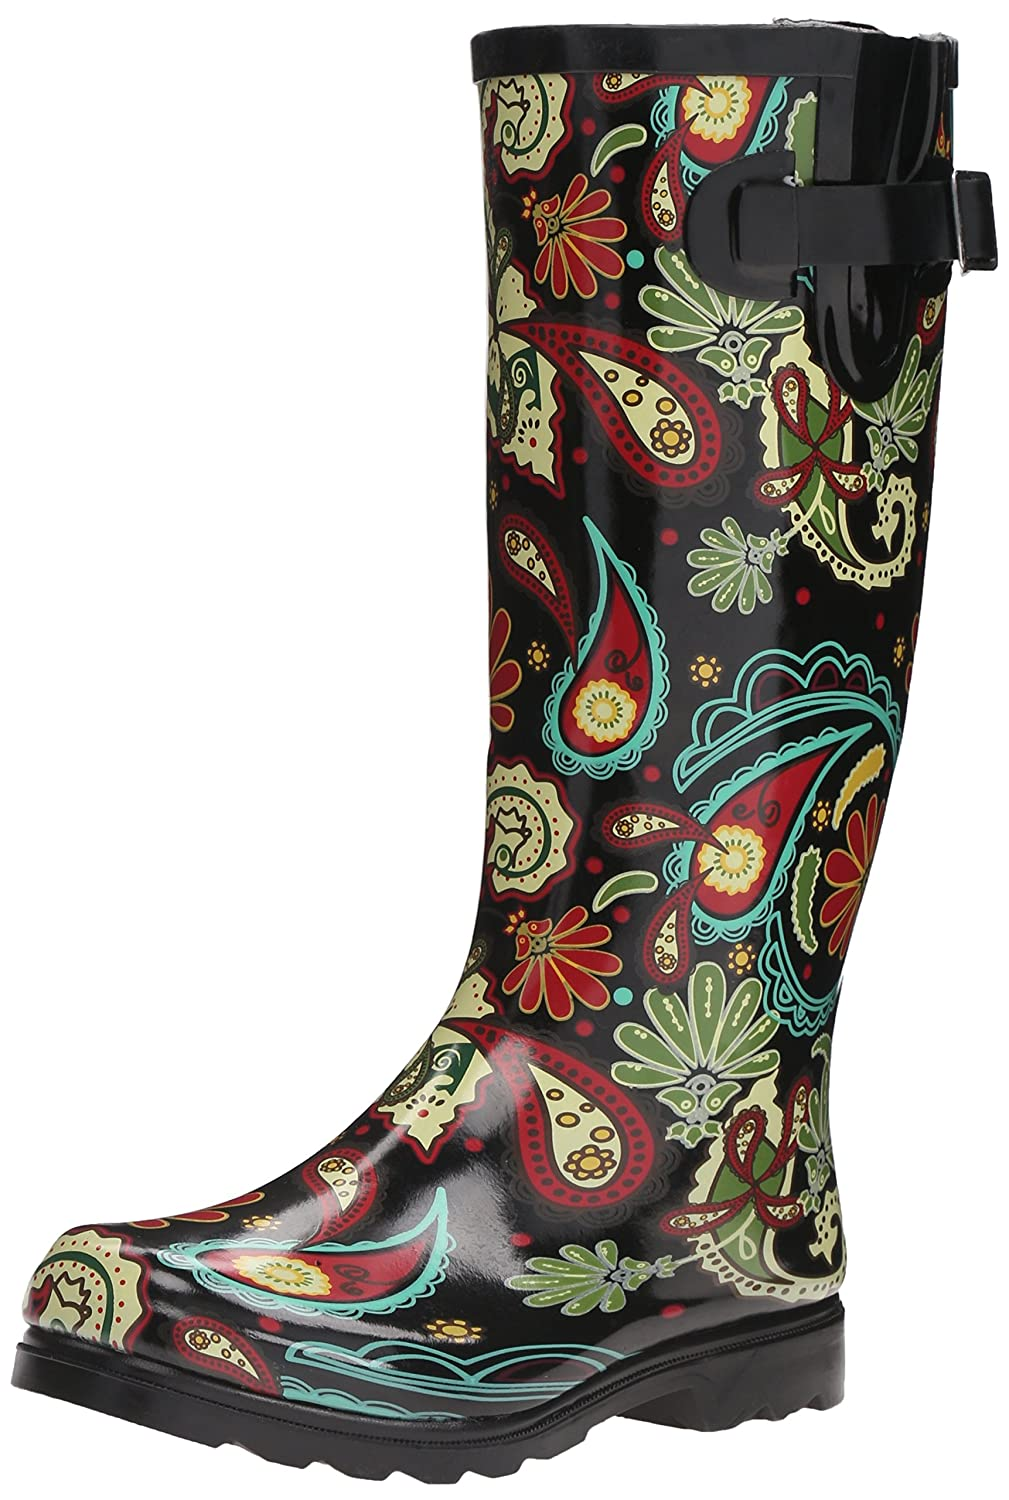 Nomad Women's Puddles Rain Boot B003VEBW90 5 M US|Black Paisley